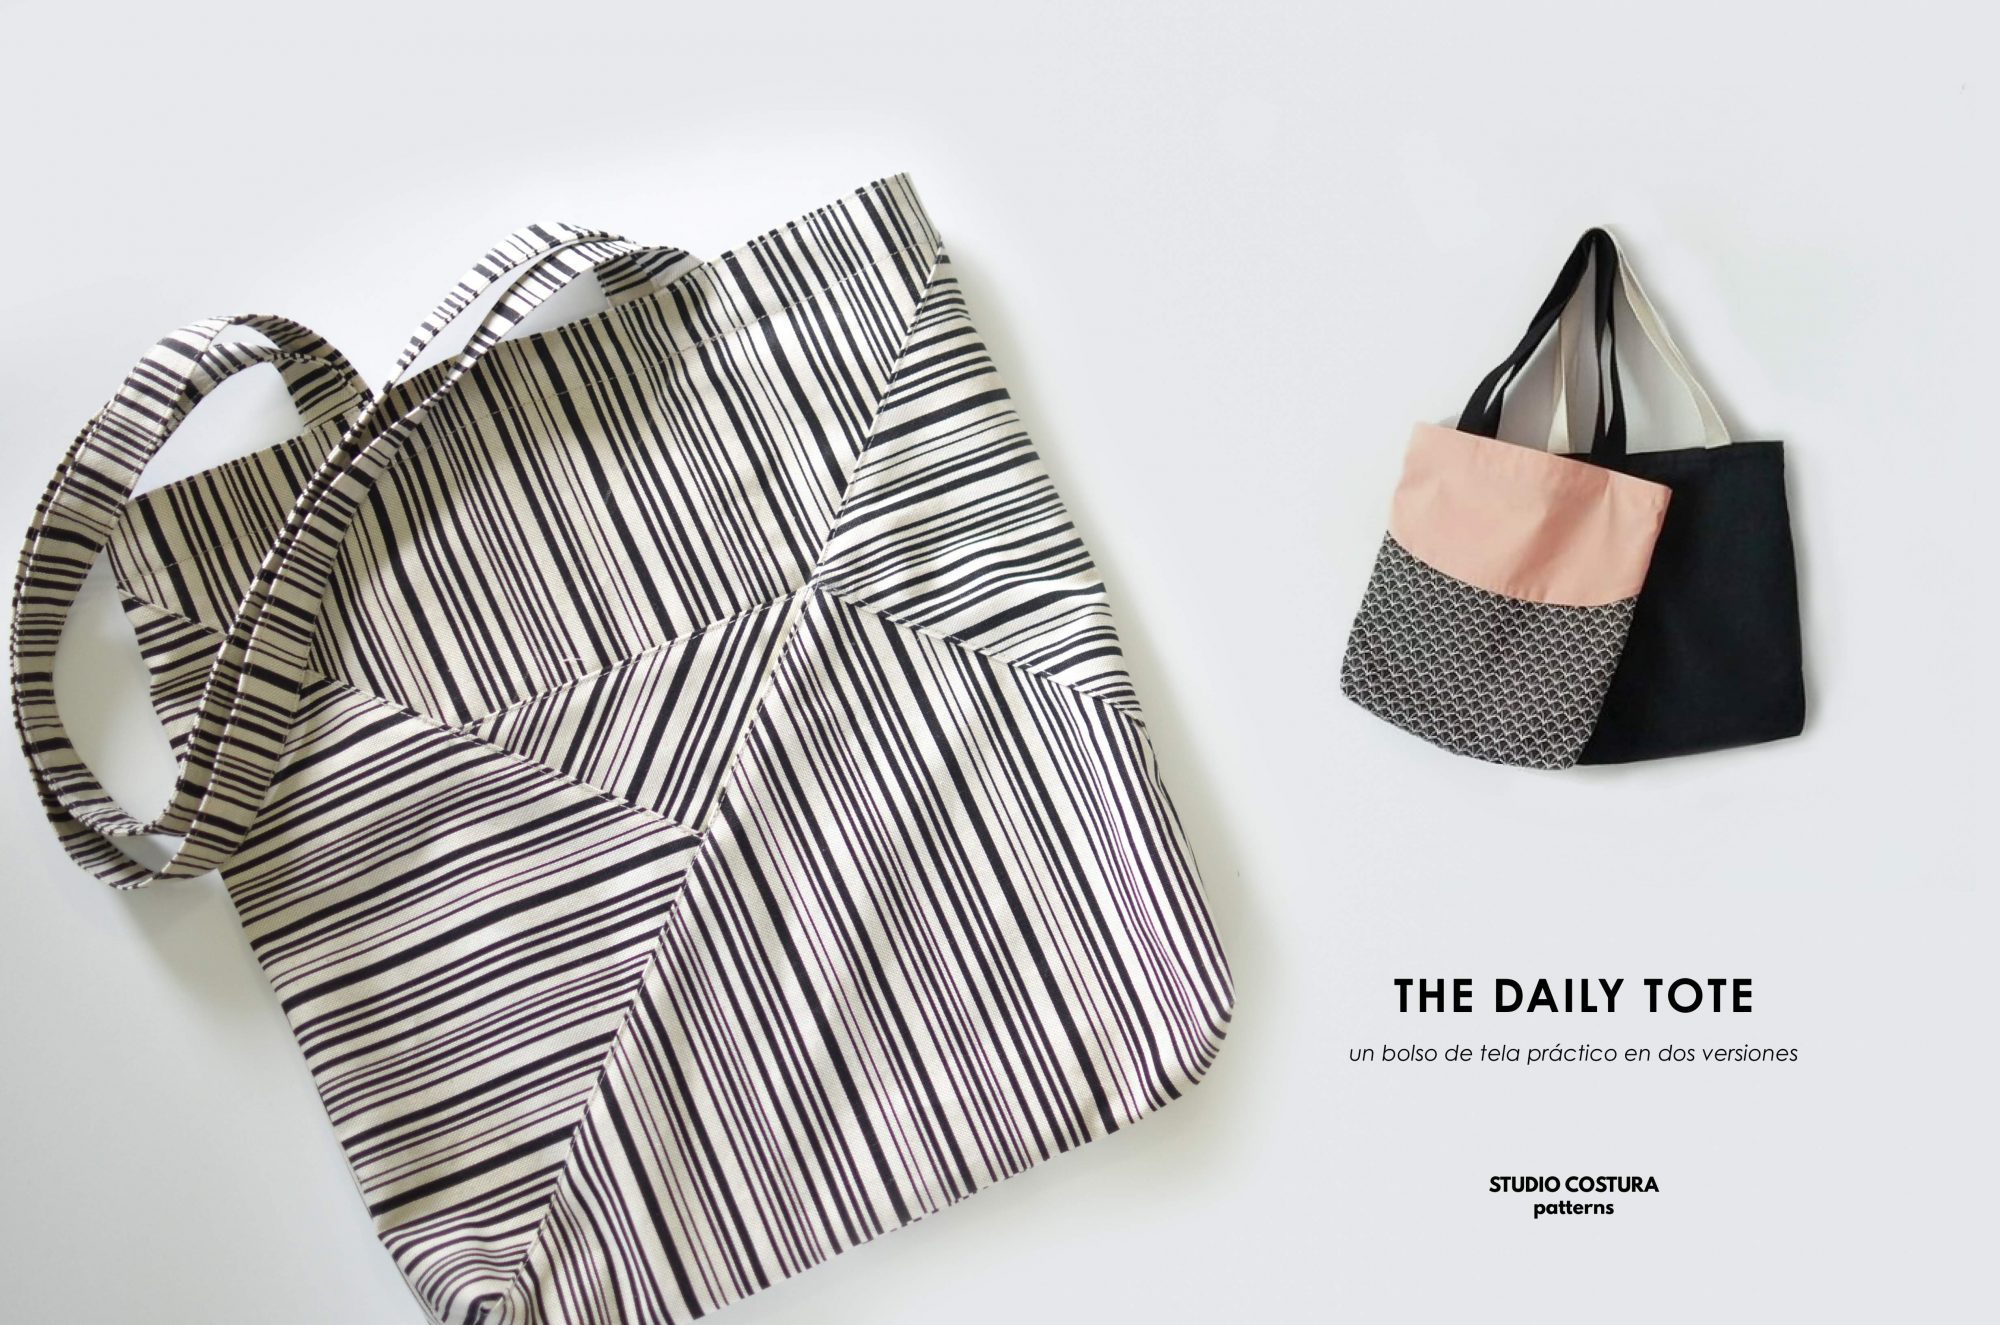 Daily tote de Studio Costura